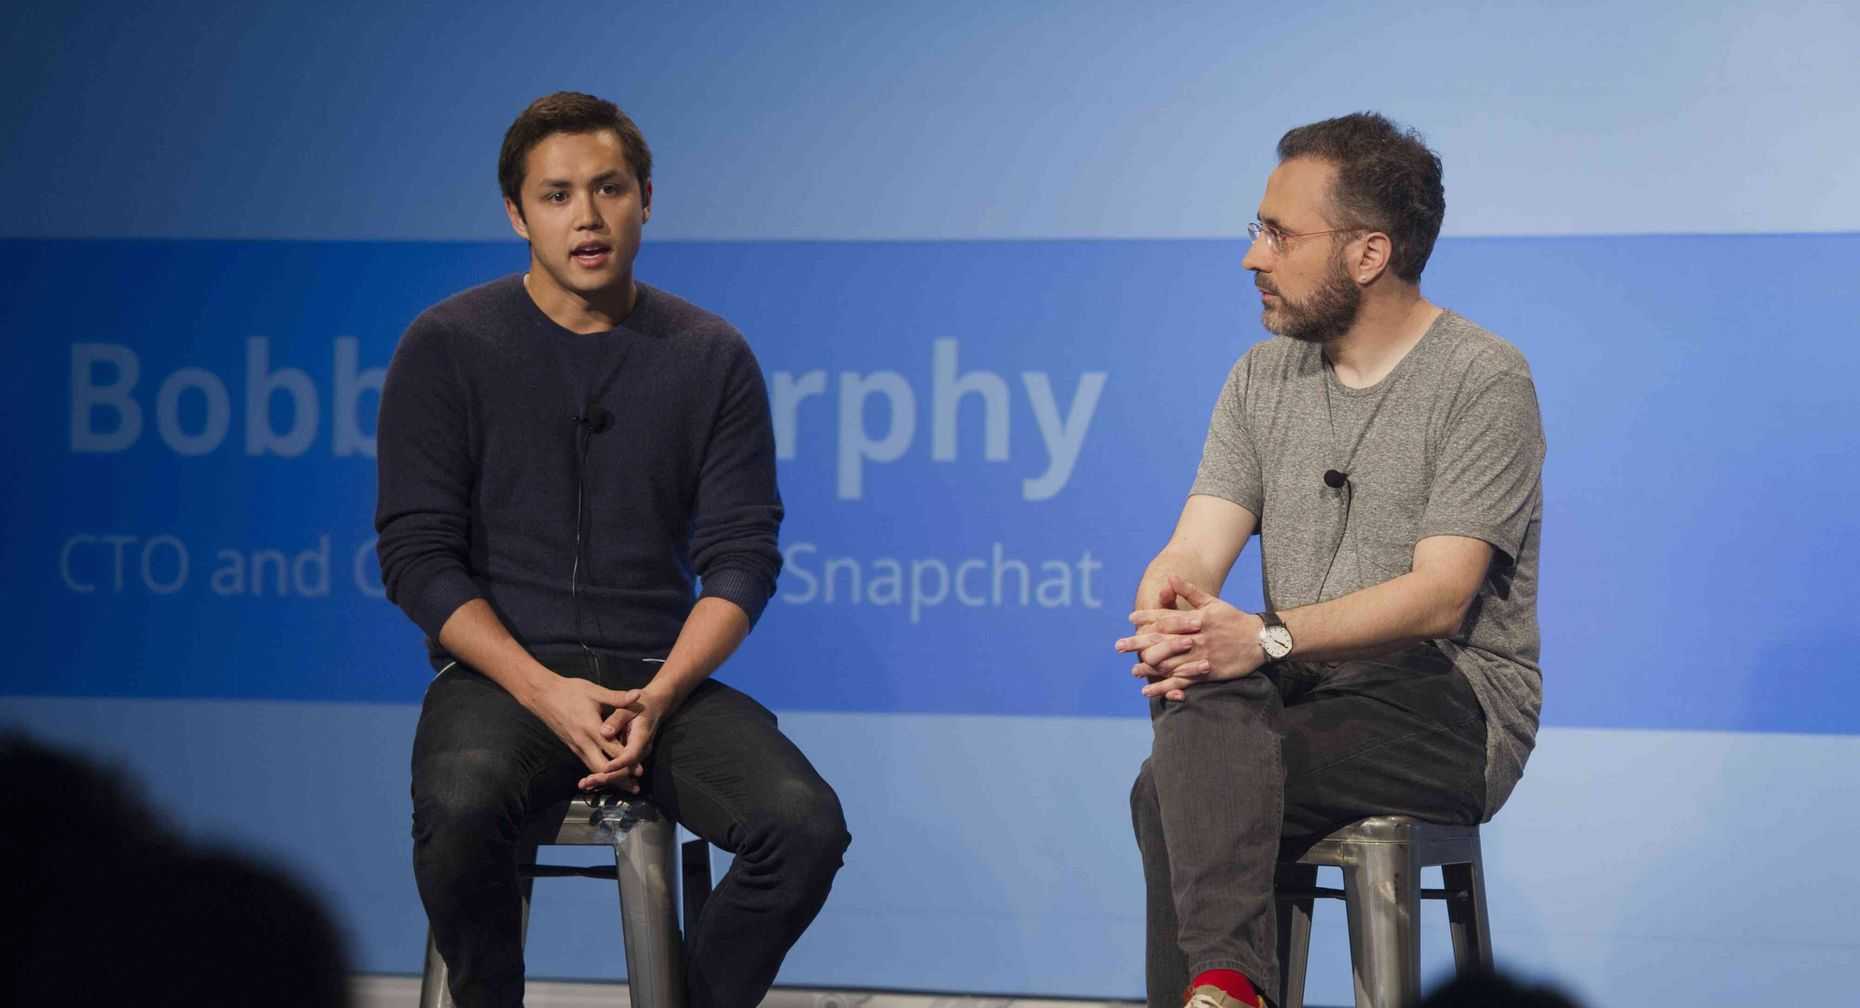 Snapchat co-founder Bobby Murphy with Google executive Urs Holzle. Photo by Bloomberg.